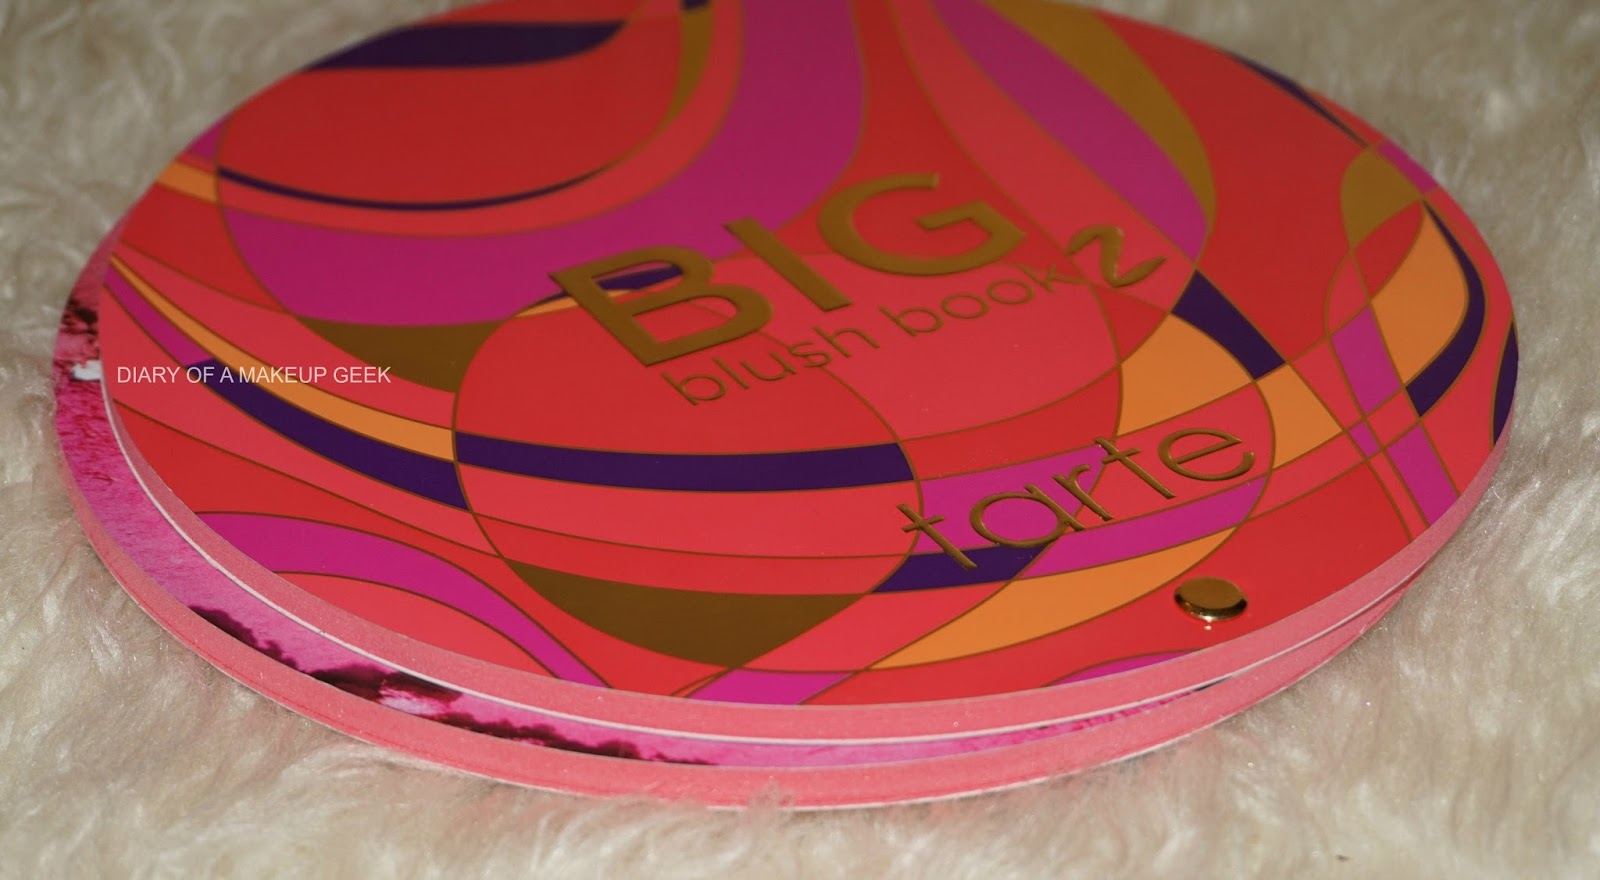 Limited Edition | Tarte Big Blush Book 2 | Review/Swatches